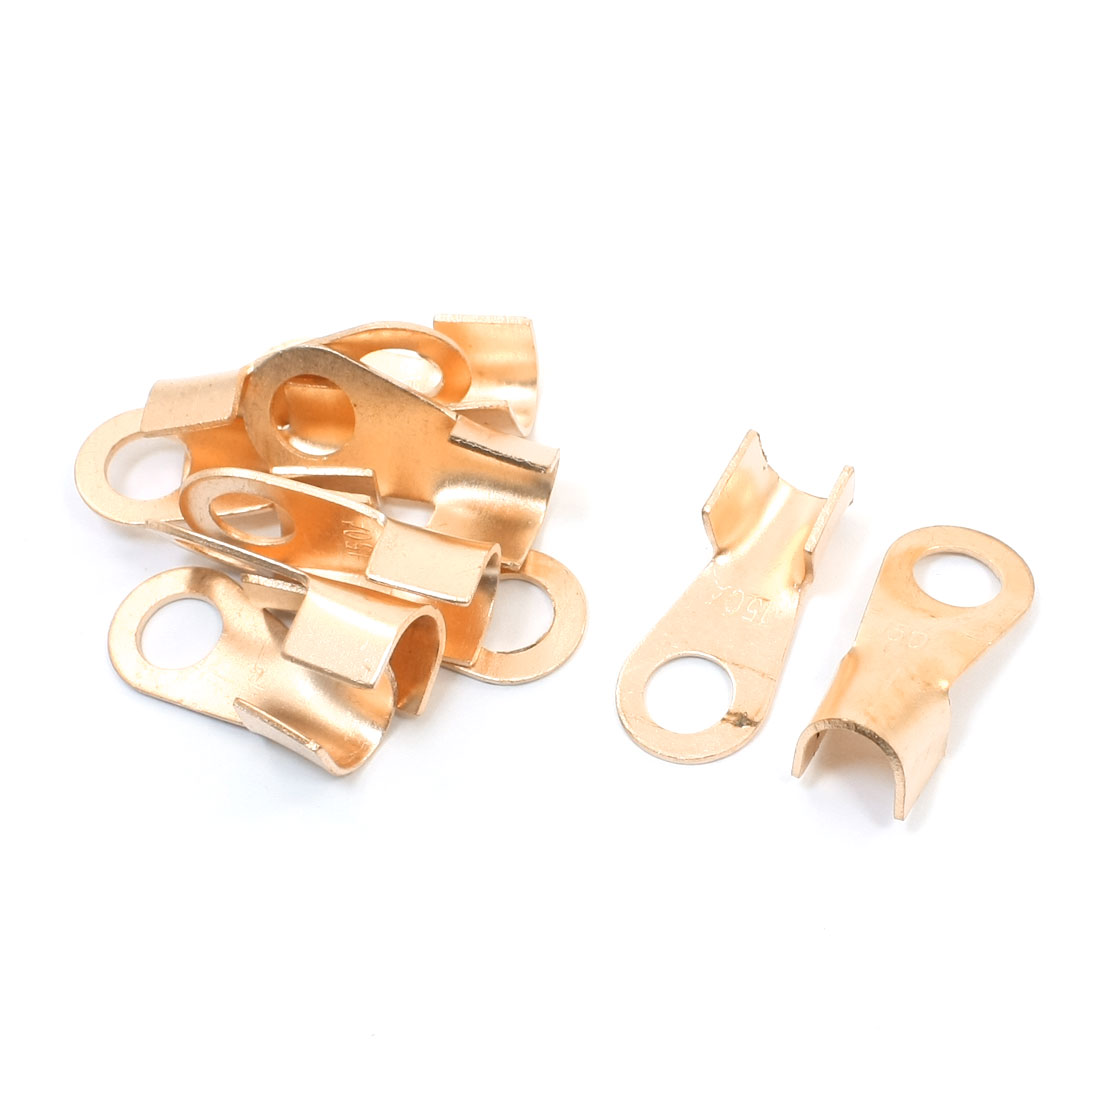 10pcs 150A Cable Tube Passing Through Crimp Copper Connector Terminal